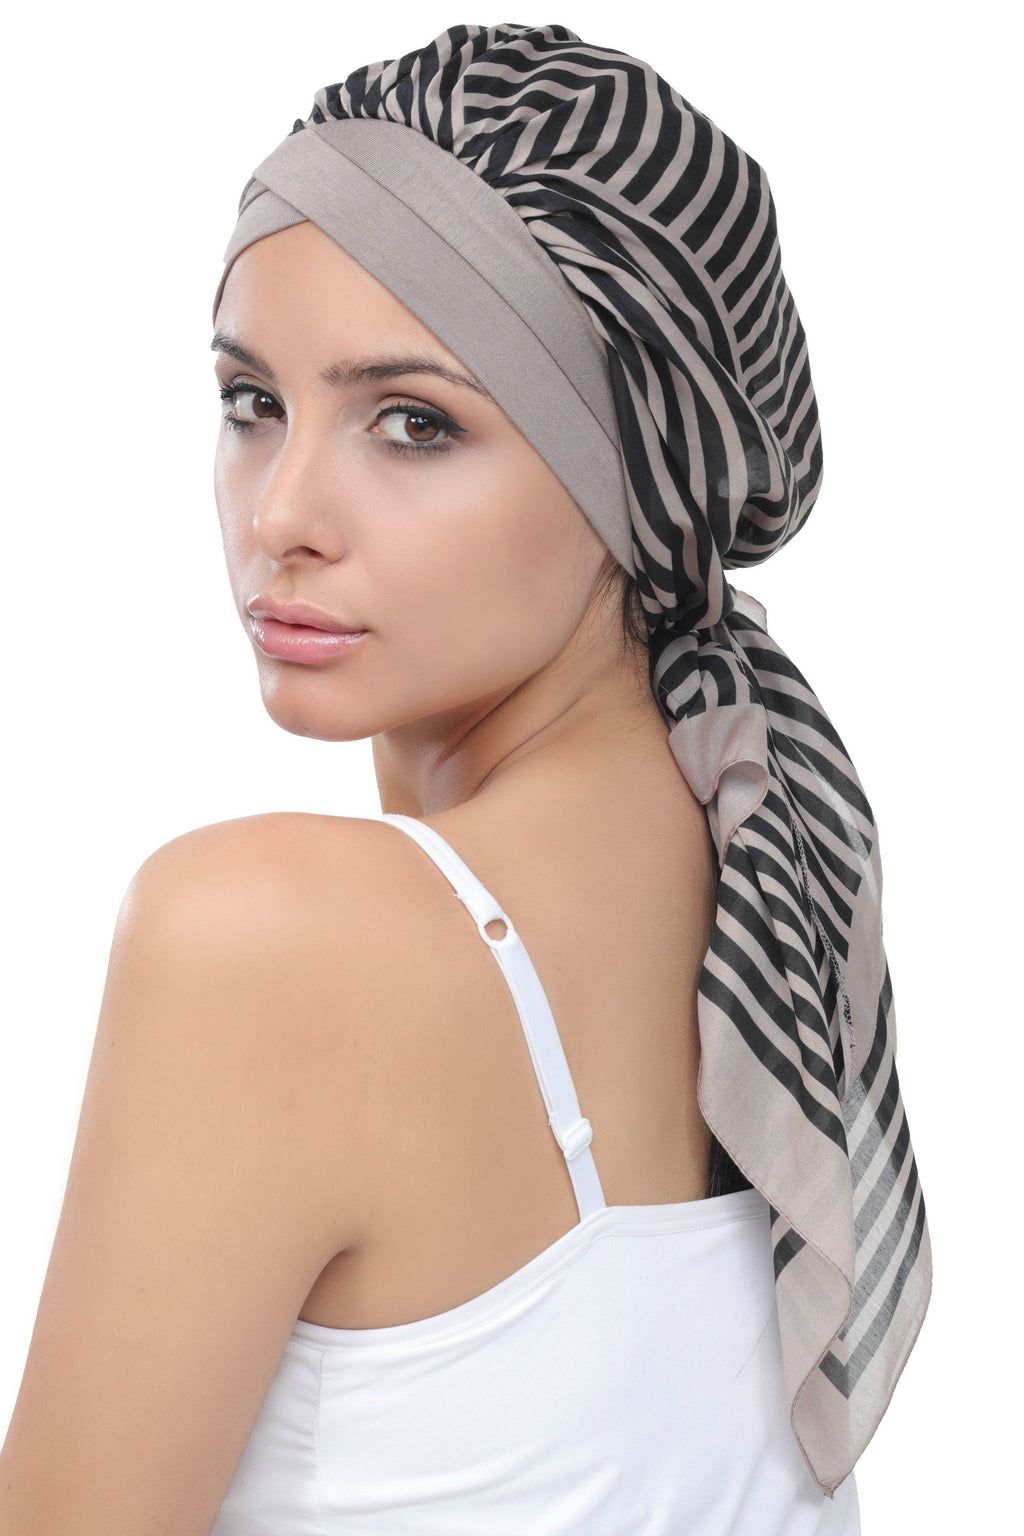 Deresina W cap with attached chemo headscarf style37 mink printed